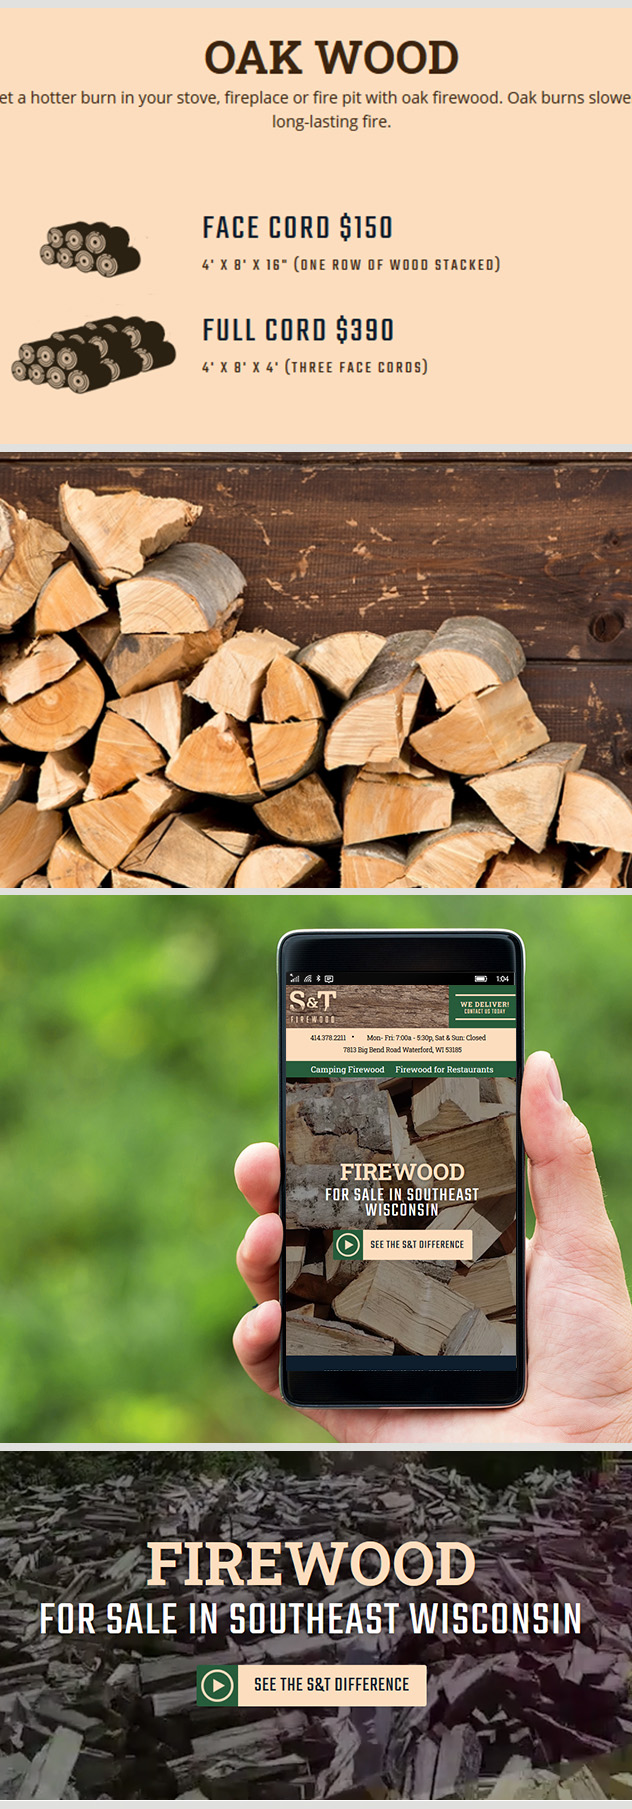 Milwaukee web design and development for S&T Firewood